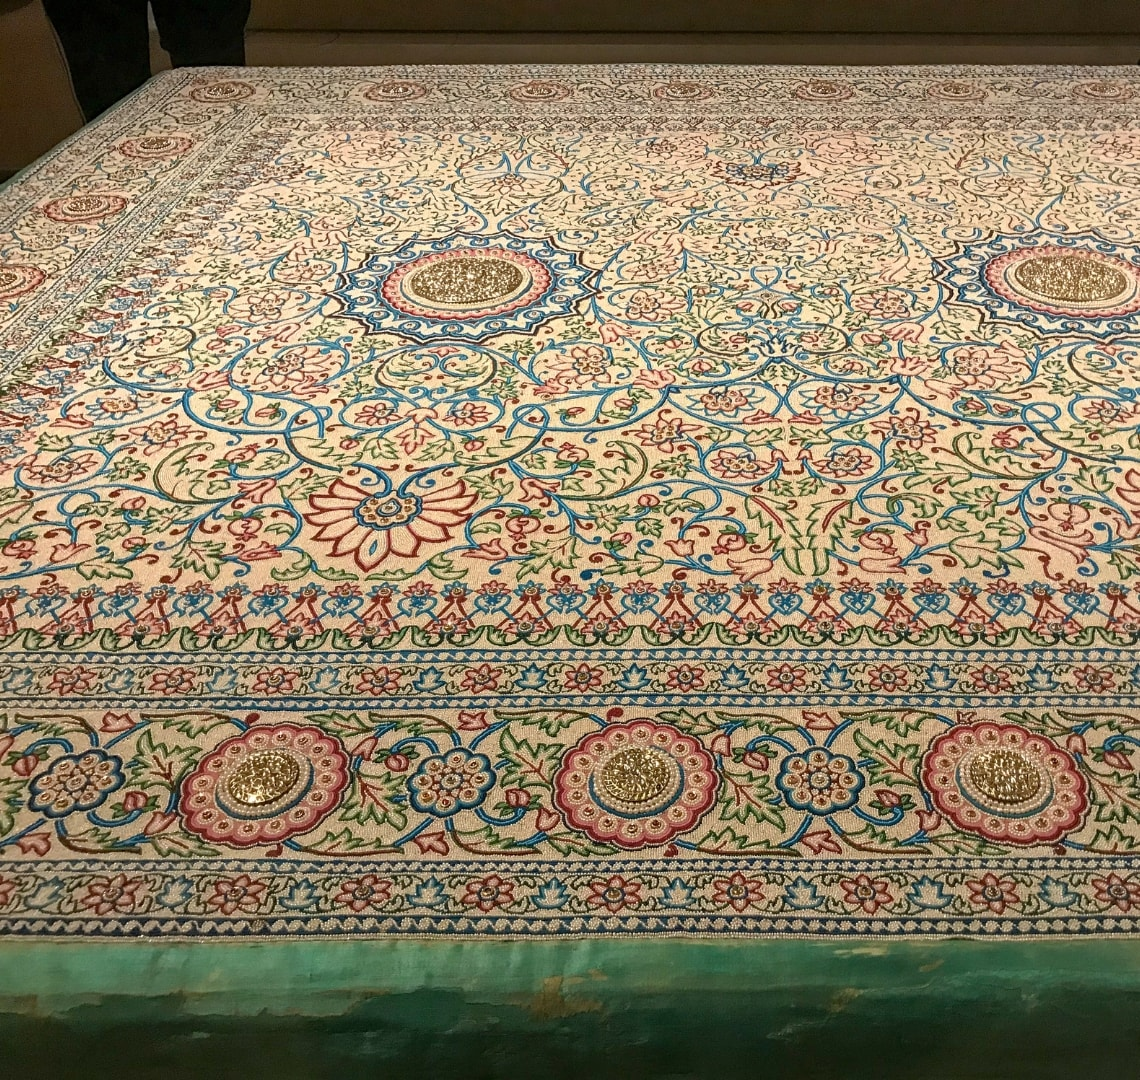 National Museum of Qatar - large view of the Pearl Carpet of Baroda which is encrusted with tiny pearls